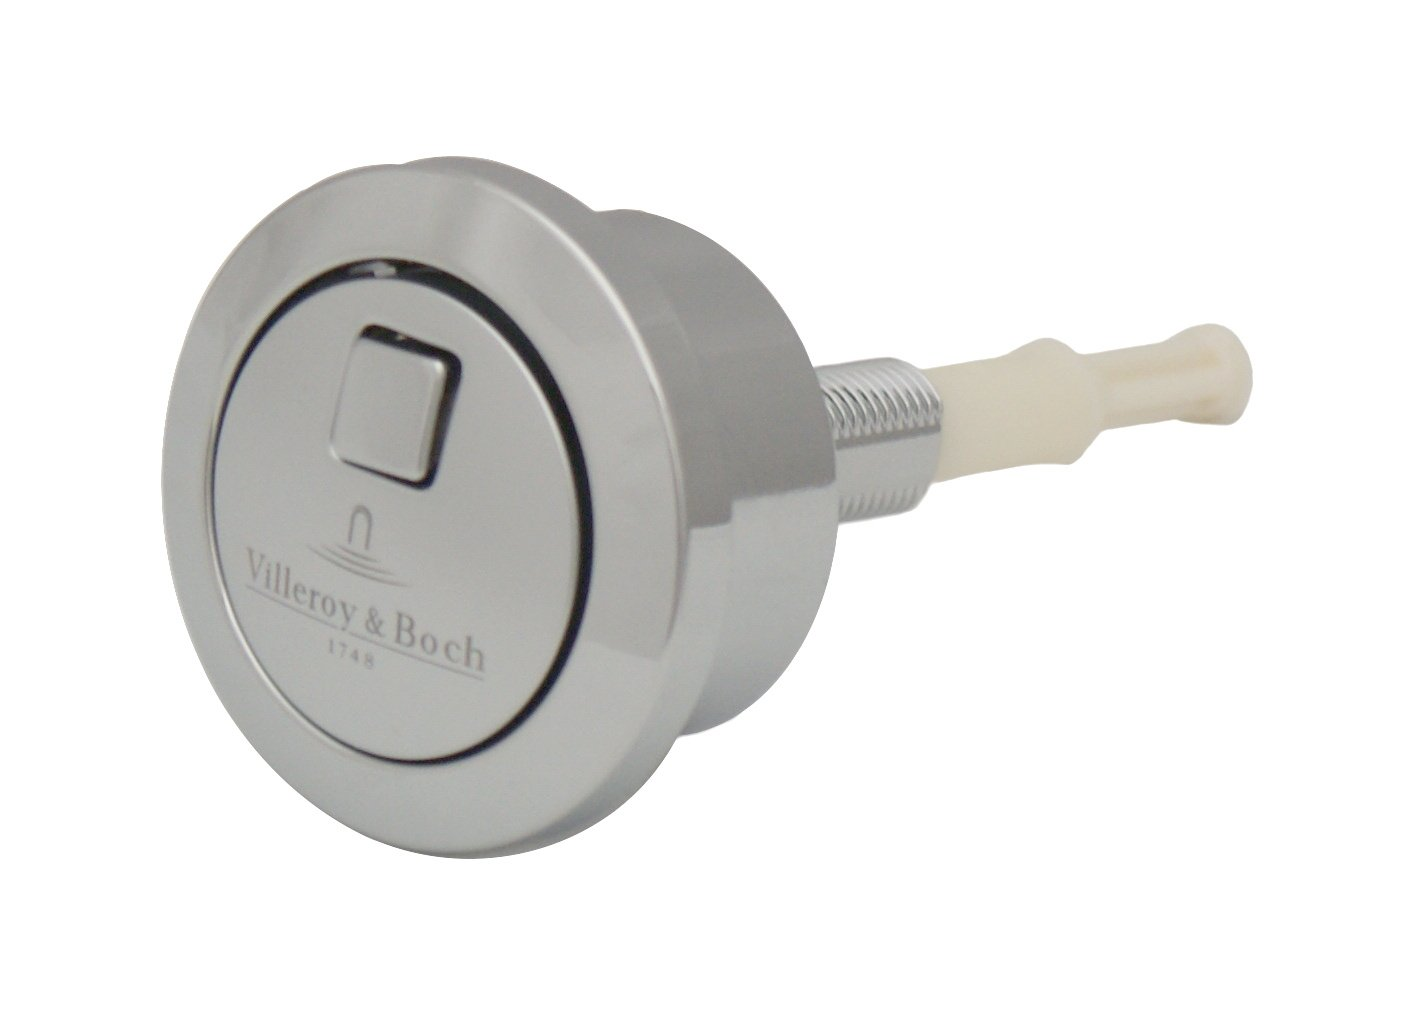 Villeroy & Boch Dual Flushing Push Button Chrome 92180961